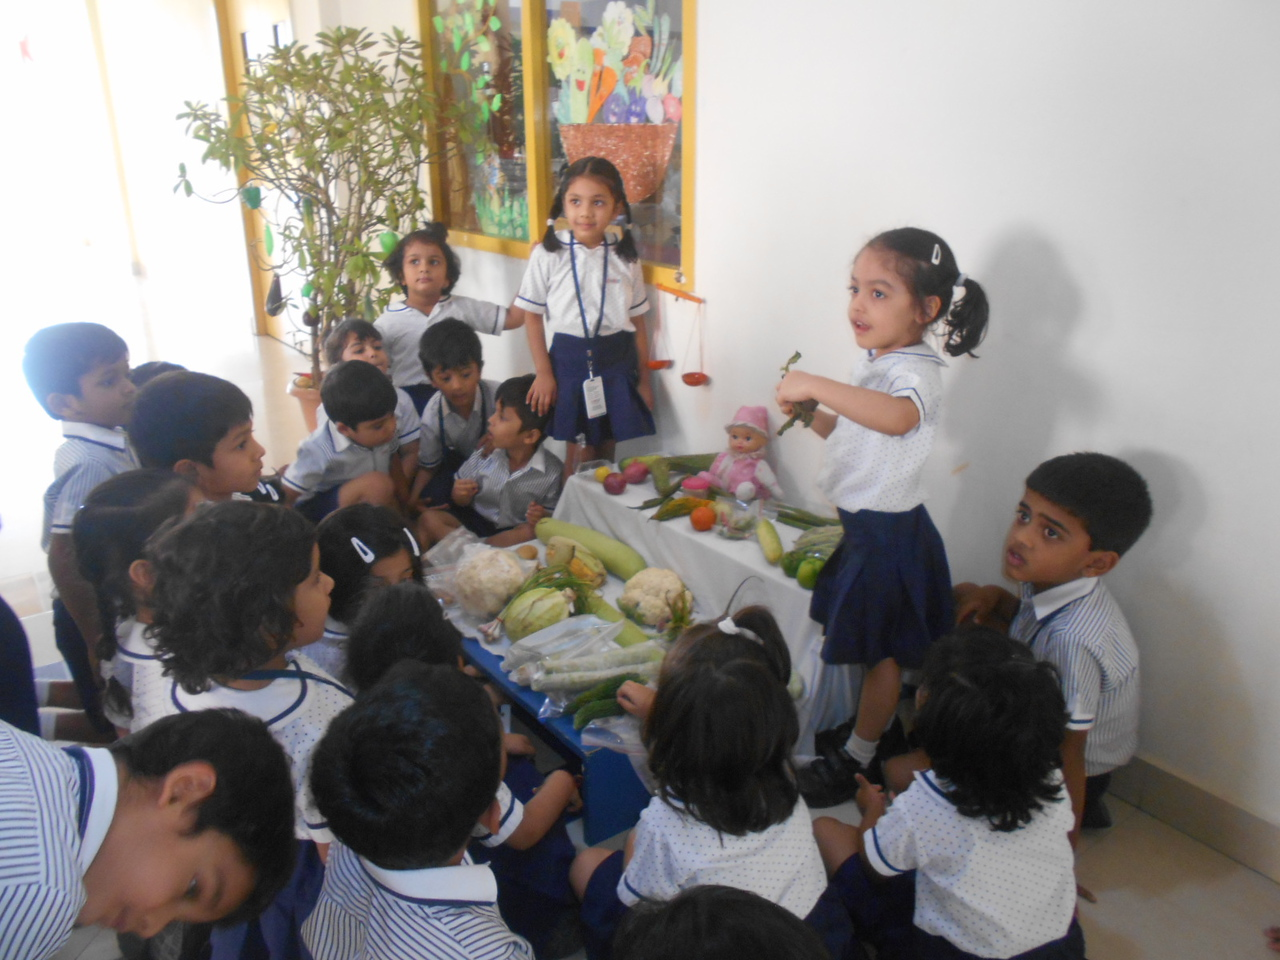 ROLE PLAY AS VEGETABLE SELLERS